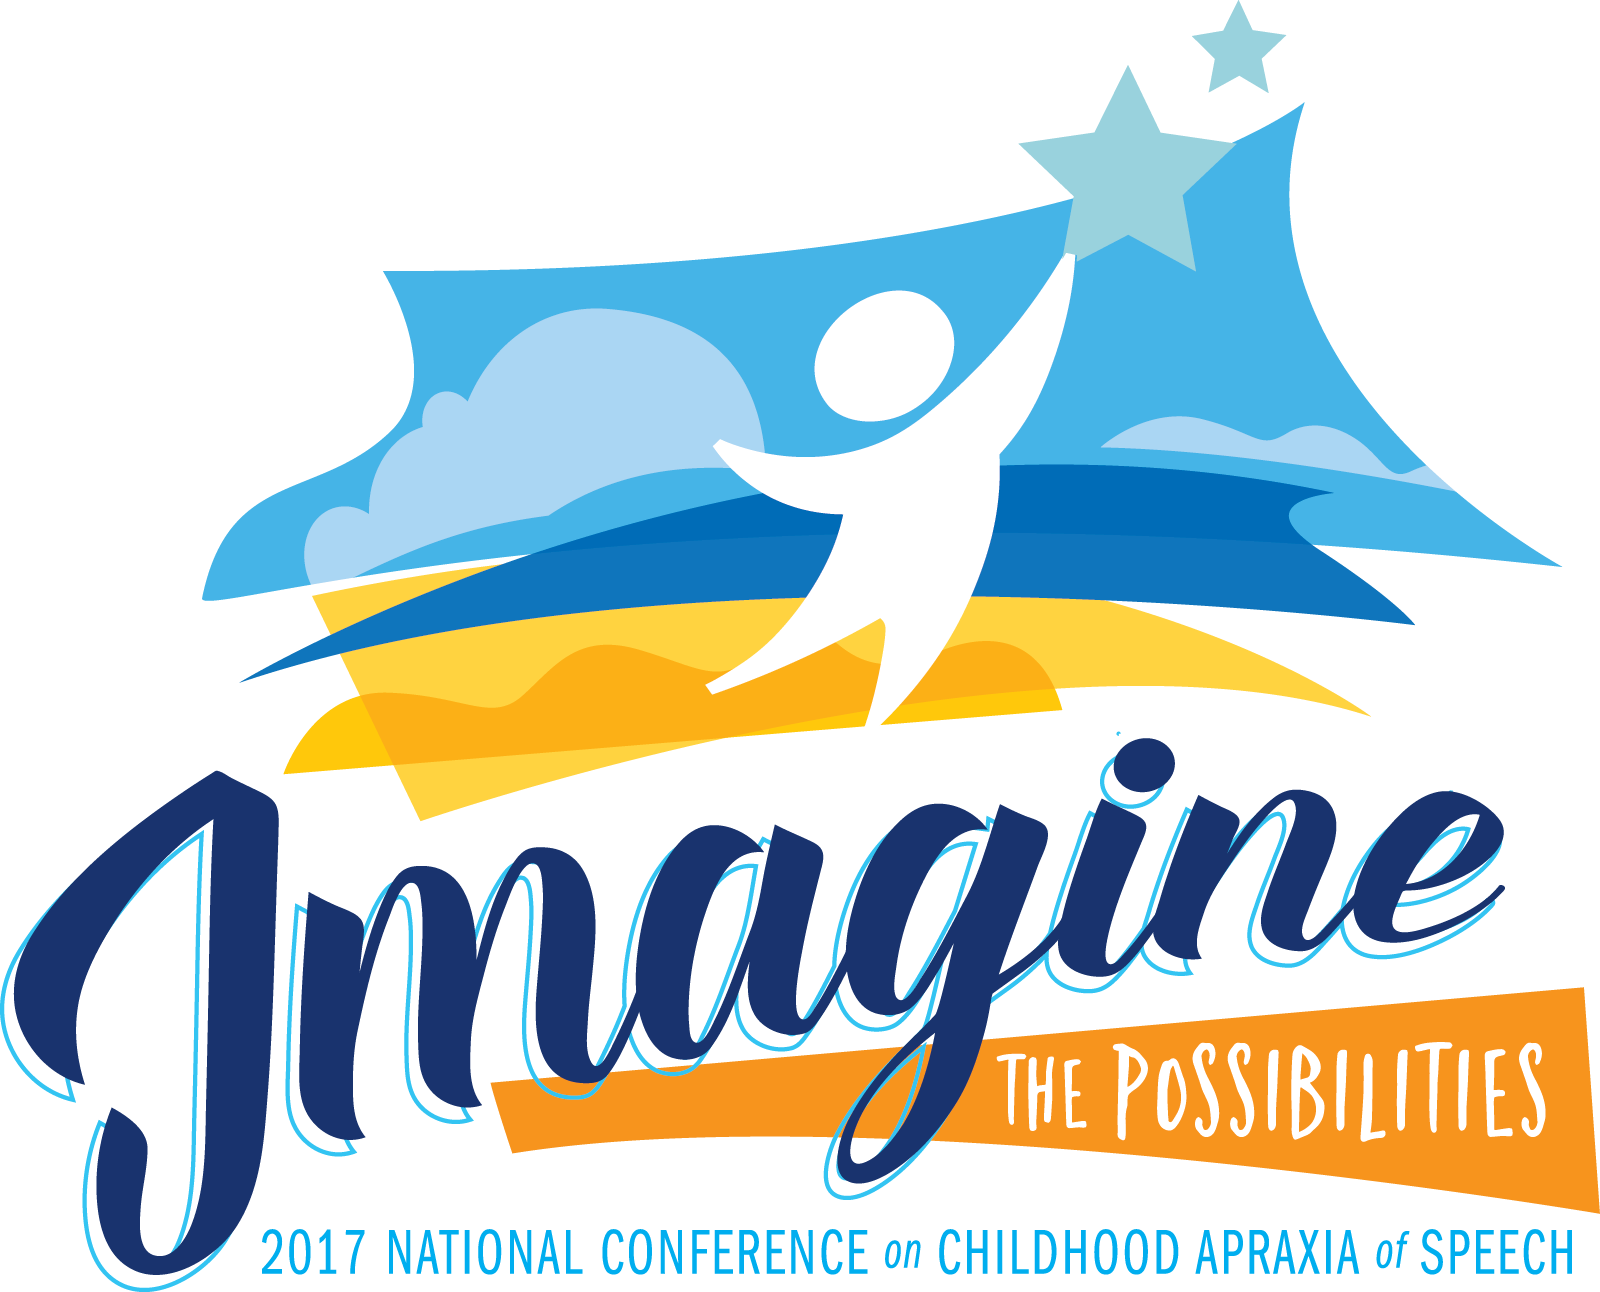 2017 National Conference on Childhood Apraxia of Speech Speaker Information  and ASHA Disclosures